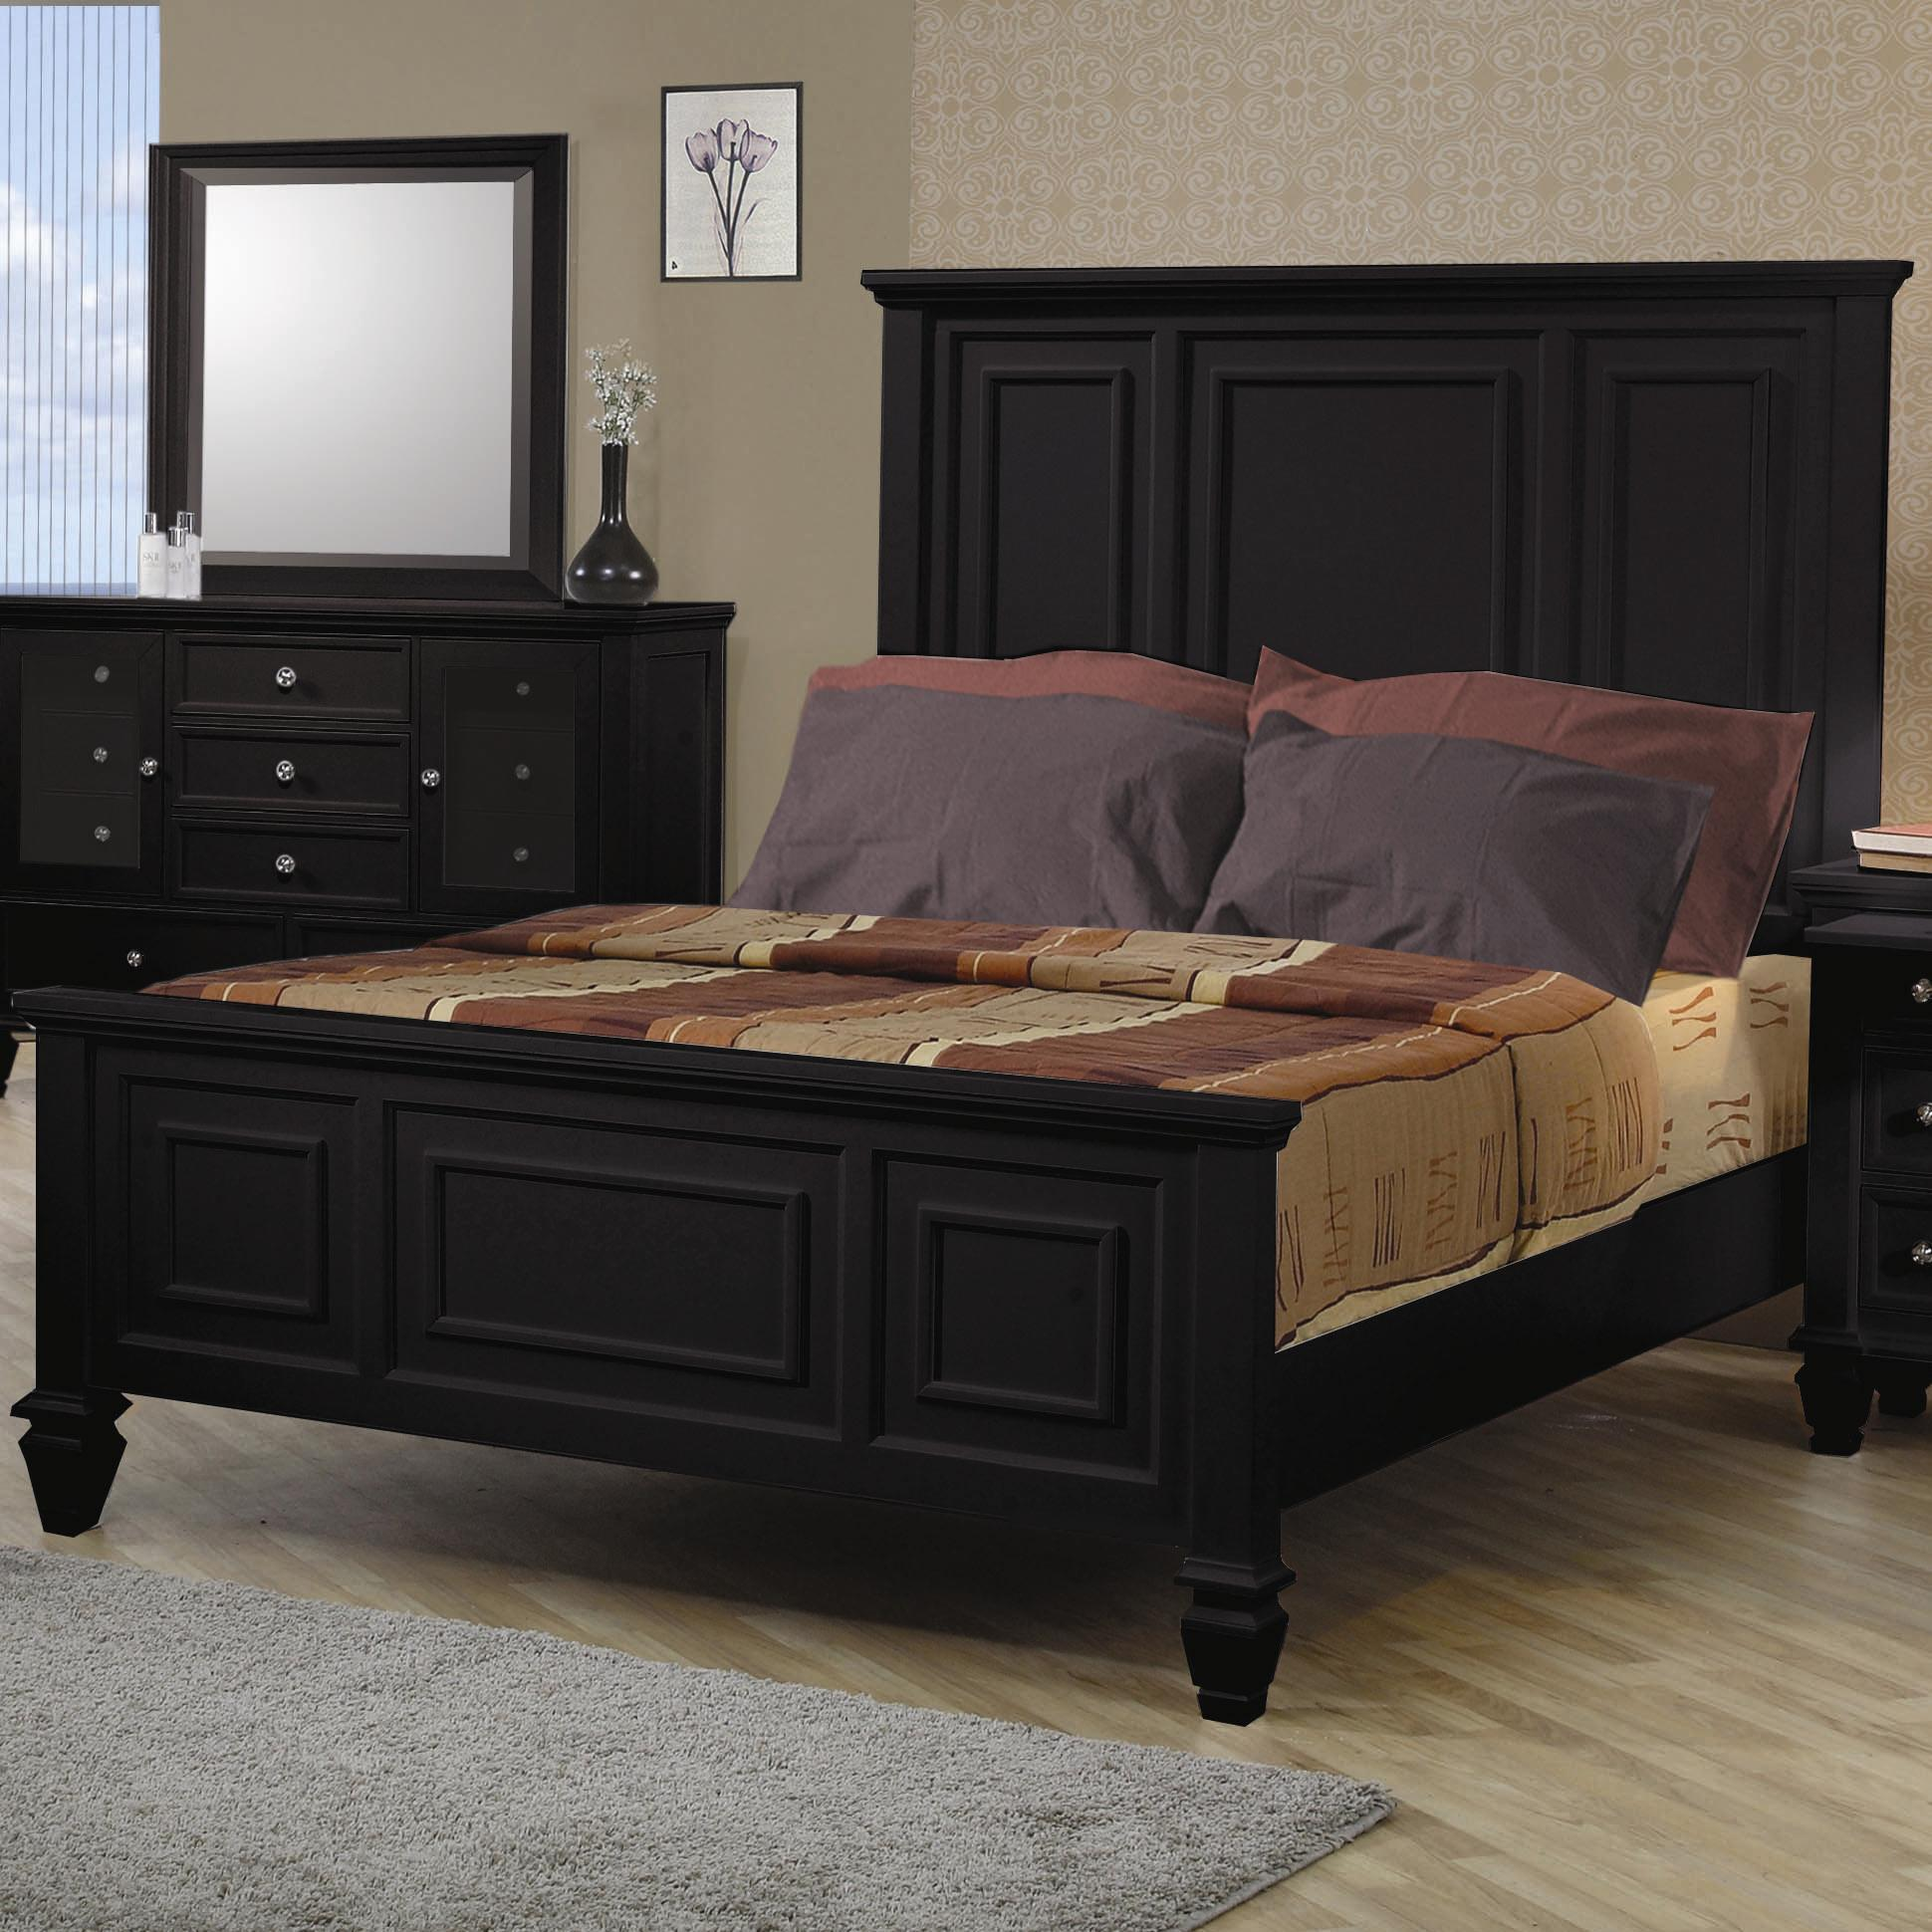 Sandy Beach King Headboard & Footboard Bed by Coaster at Furniture Superstore - Rochester, MN